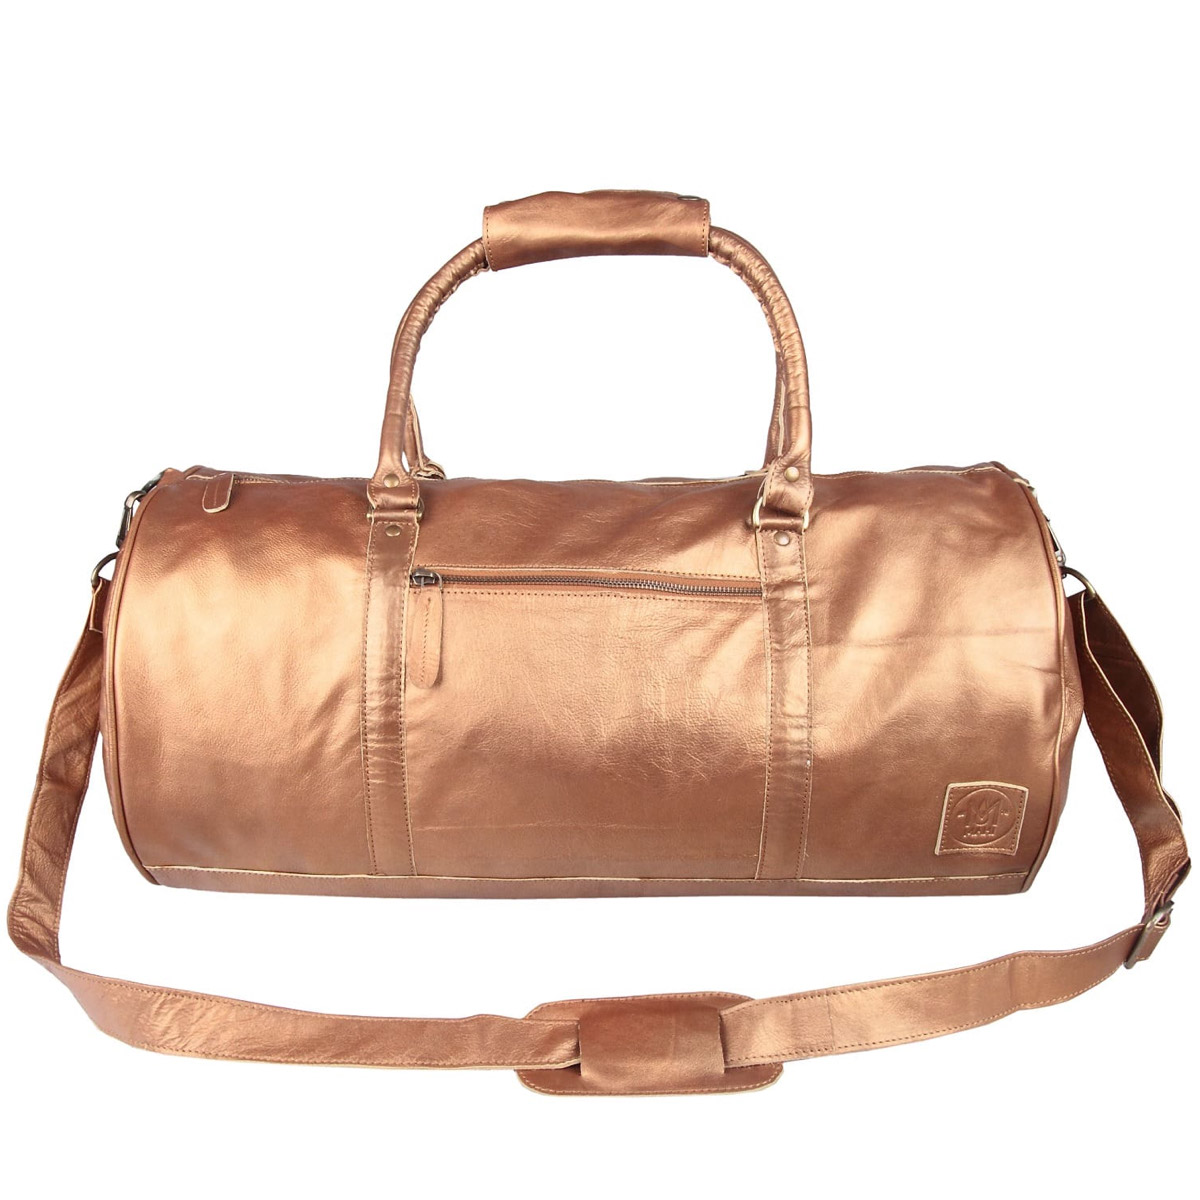 Overnighter / Gym bag in Bronze Leather